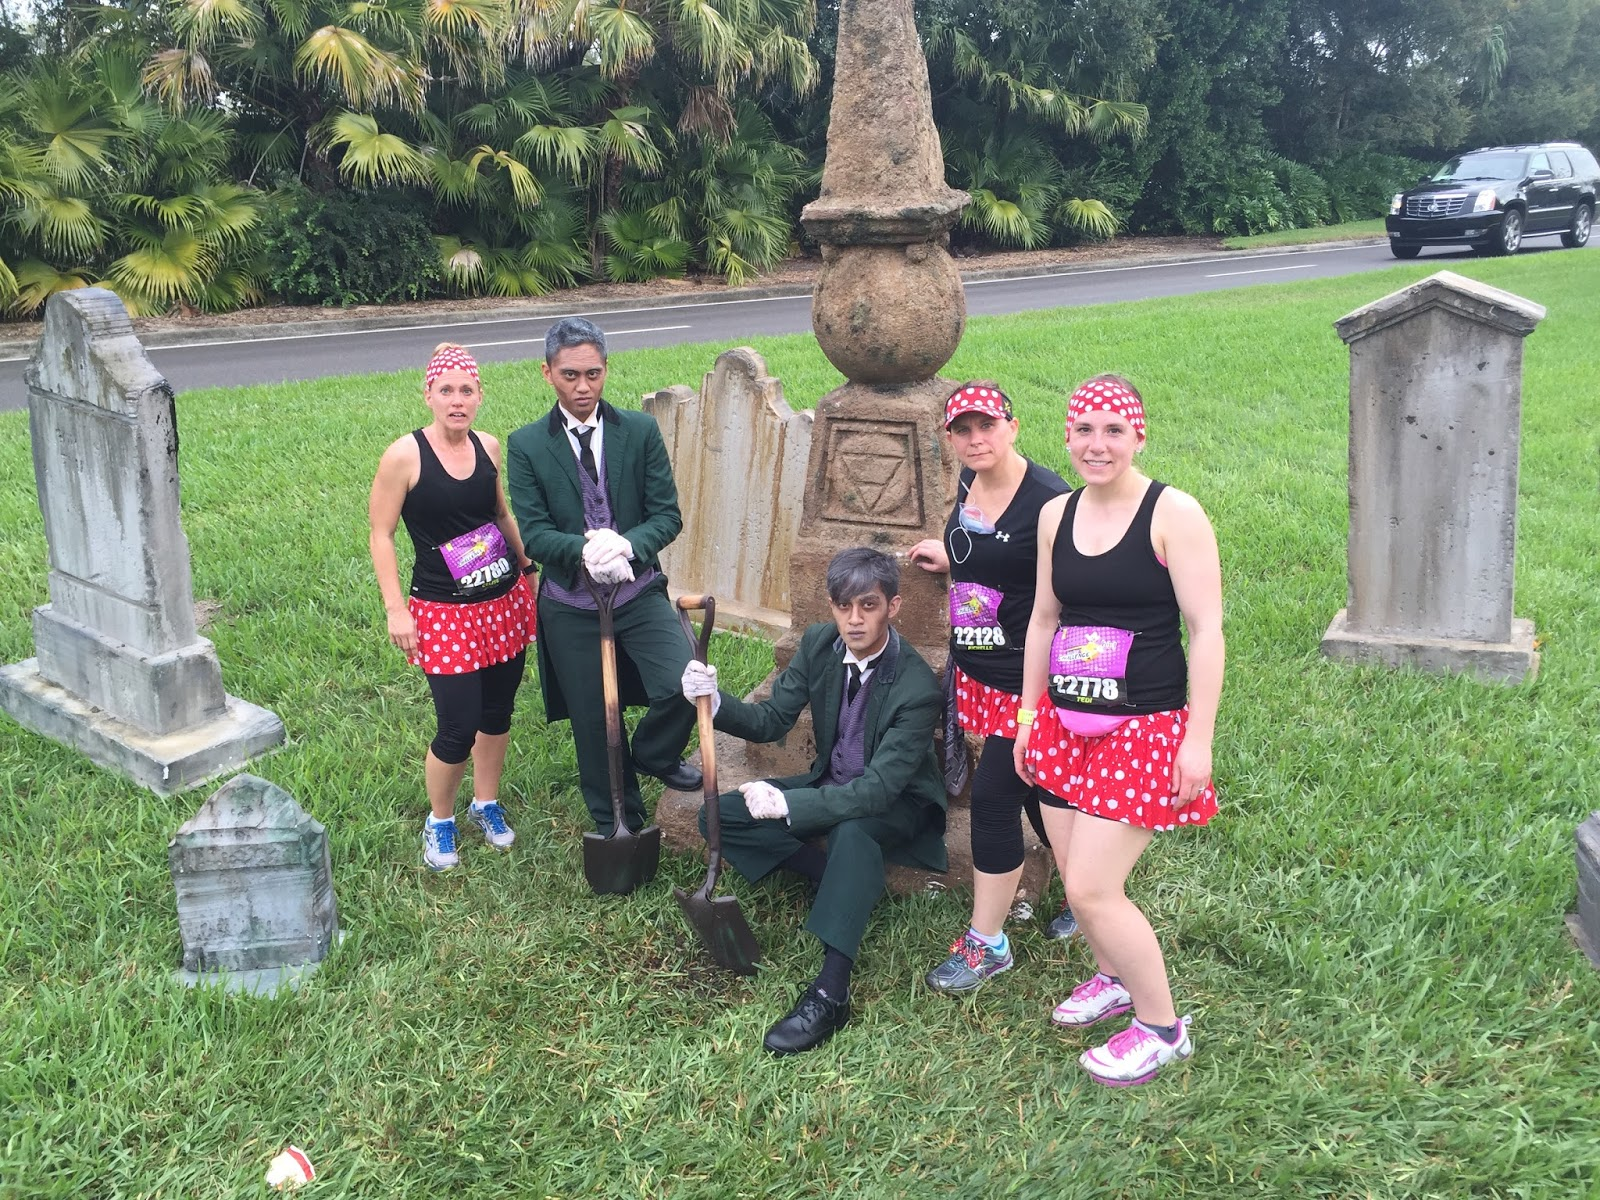 Dopey Challenge Mickey Marathon 2016 Not digging our graves I hope